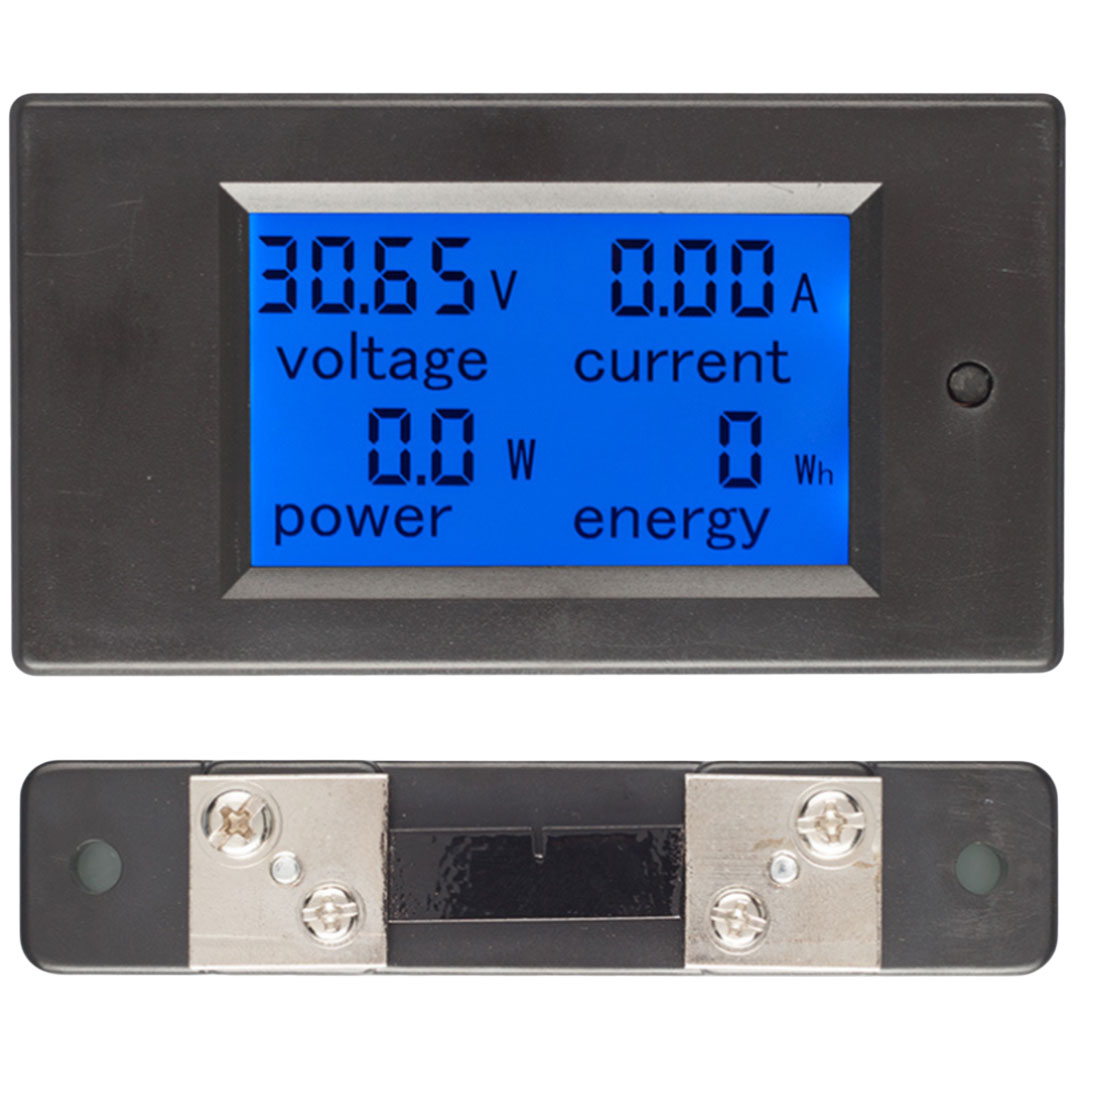 New 50A DC 6.5-100V LCD Combo Meter Voltage Current KWh Watt Panel Meter 12V 24V 48V Battery Power Monitoring + 50A Shunt